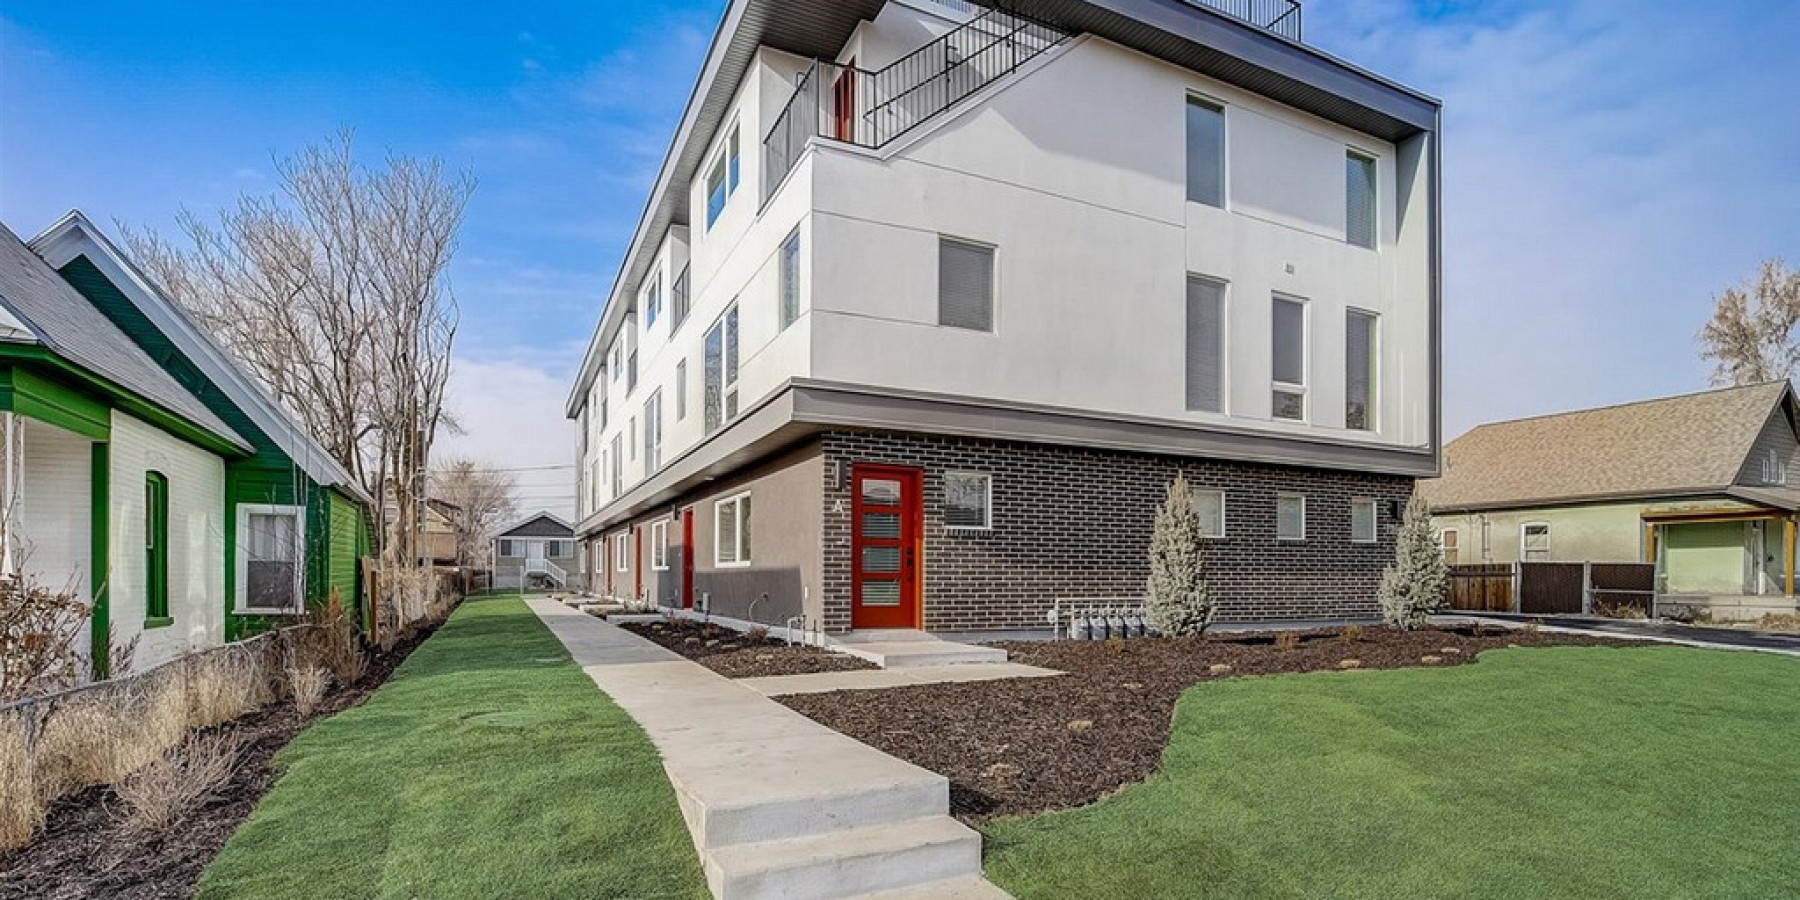 736 South 300 East, Unit B, Salt Lake City, UT 84111